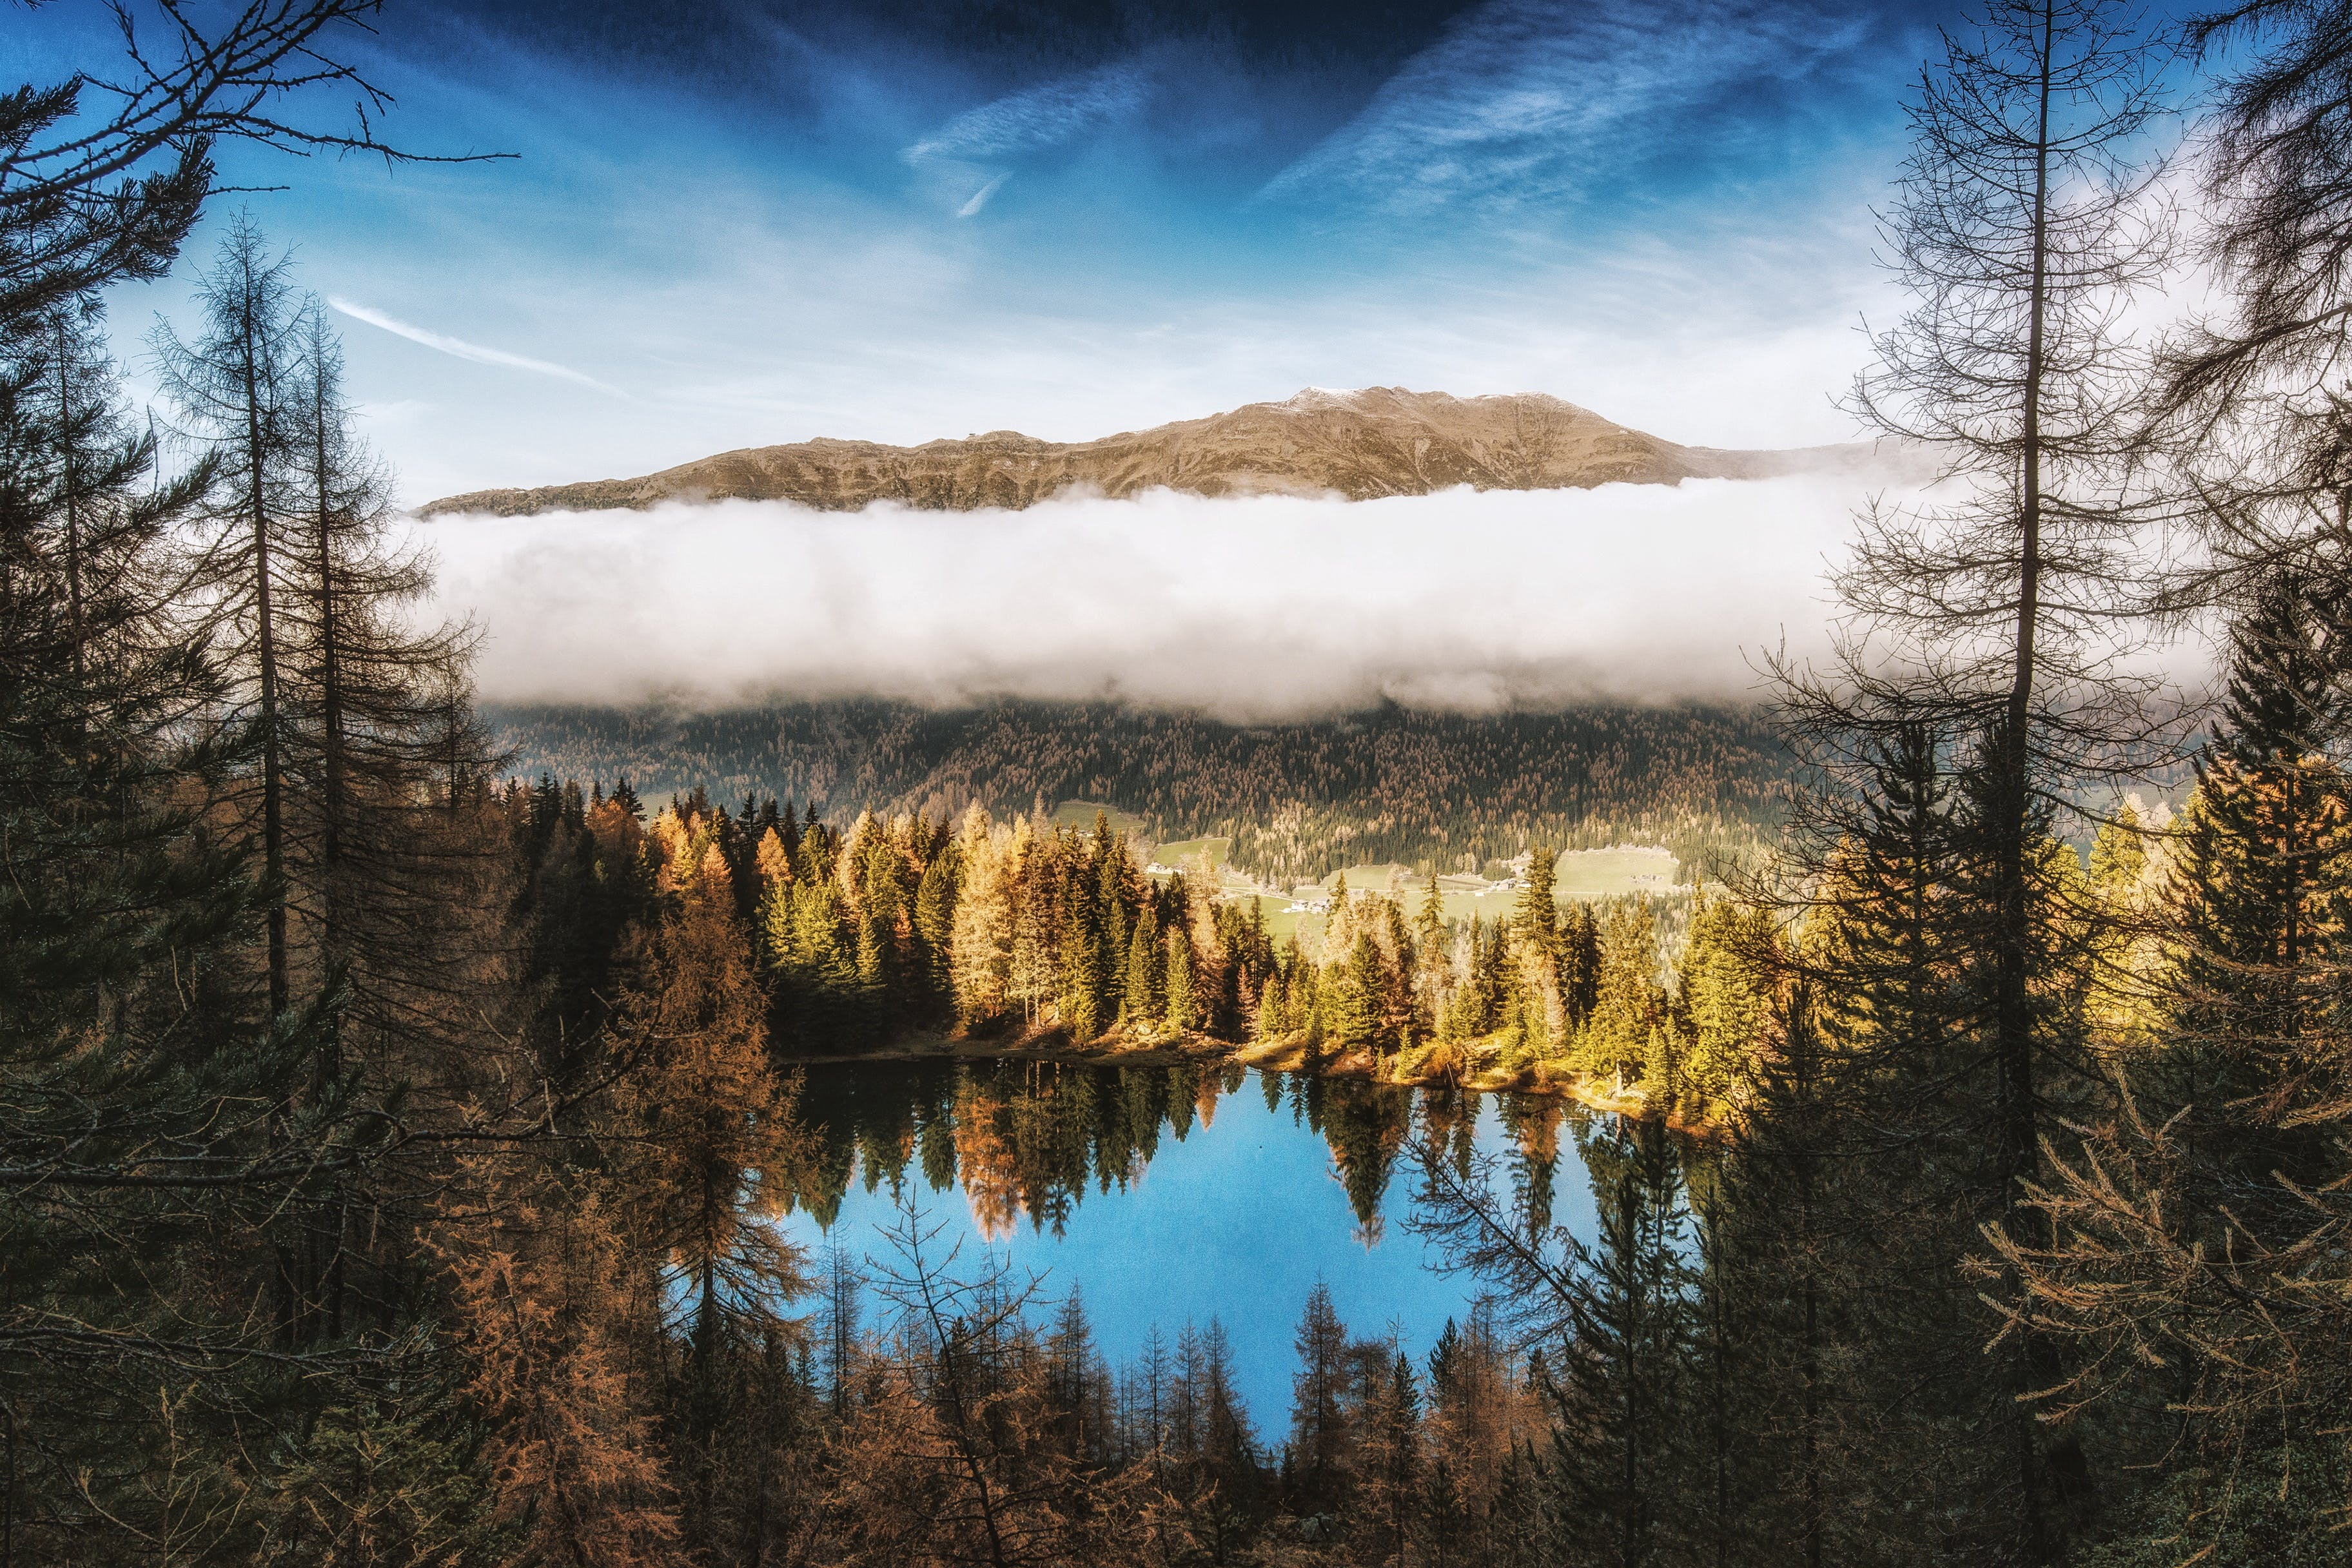 Pine Trees Beside Body of Water Near Mountain Under White Clouds